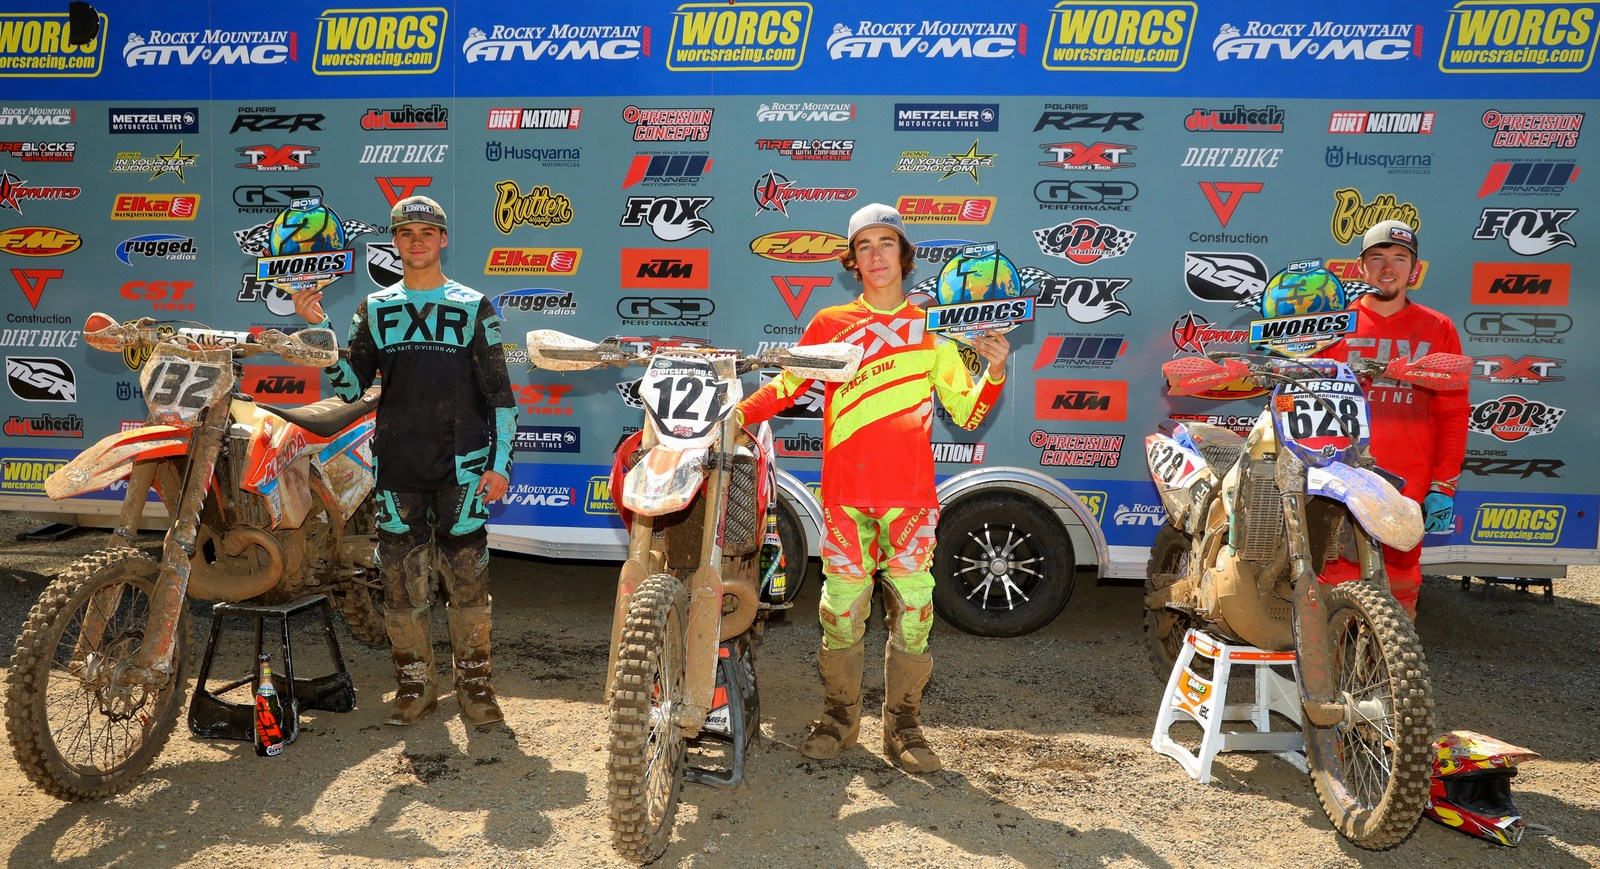 2019-08-podium-pro2-lites-bike-worcs-racing